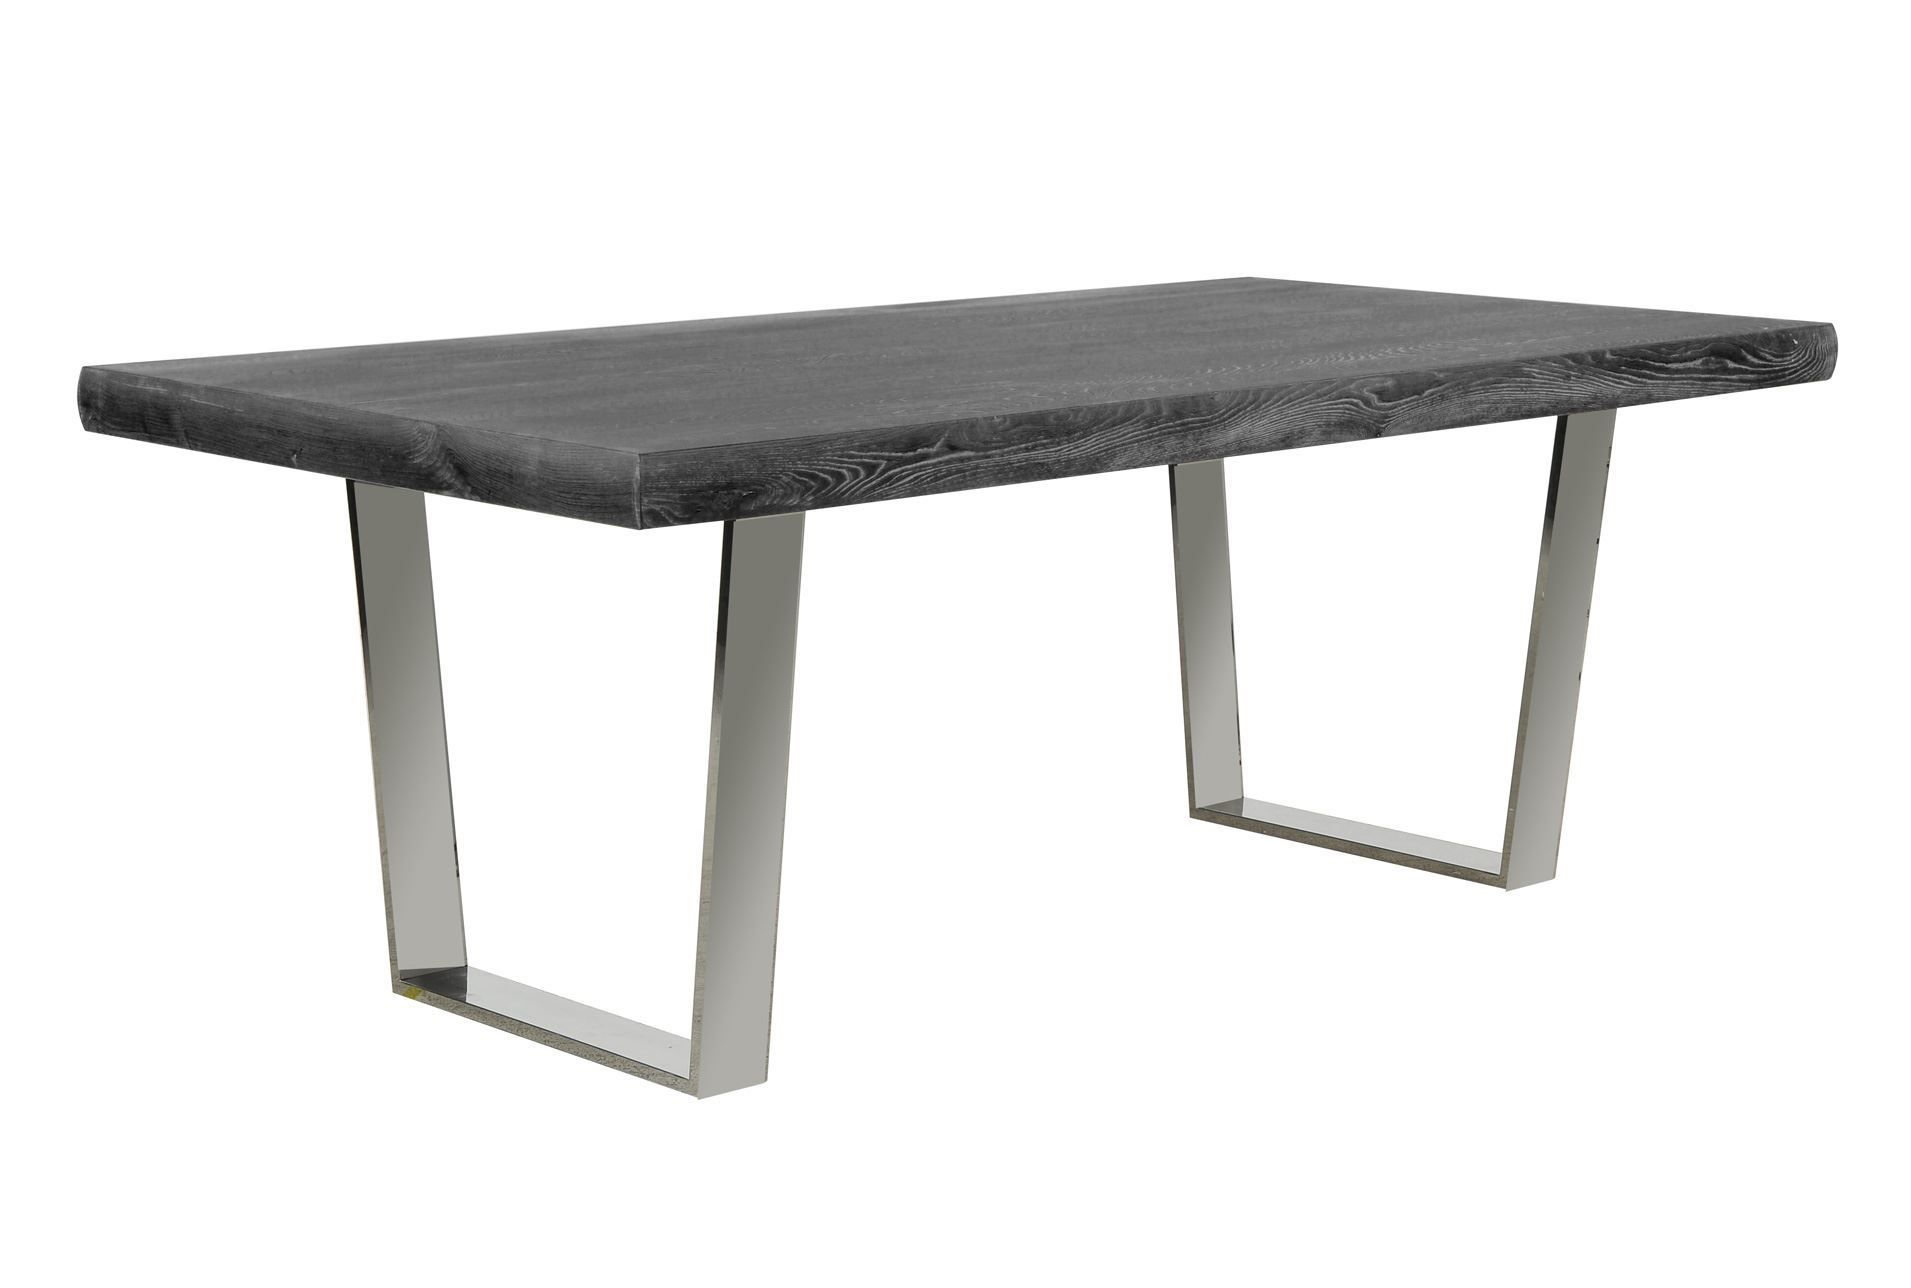 bateau grey dining table | grey dining tables, gray and